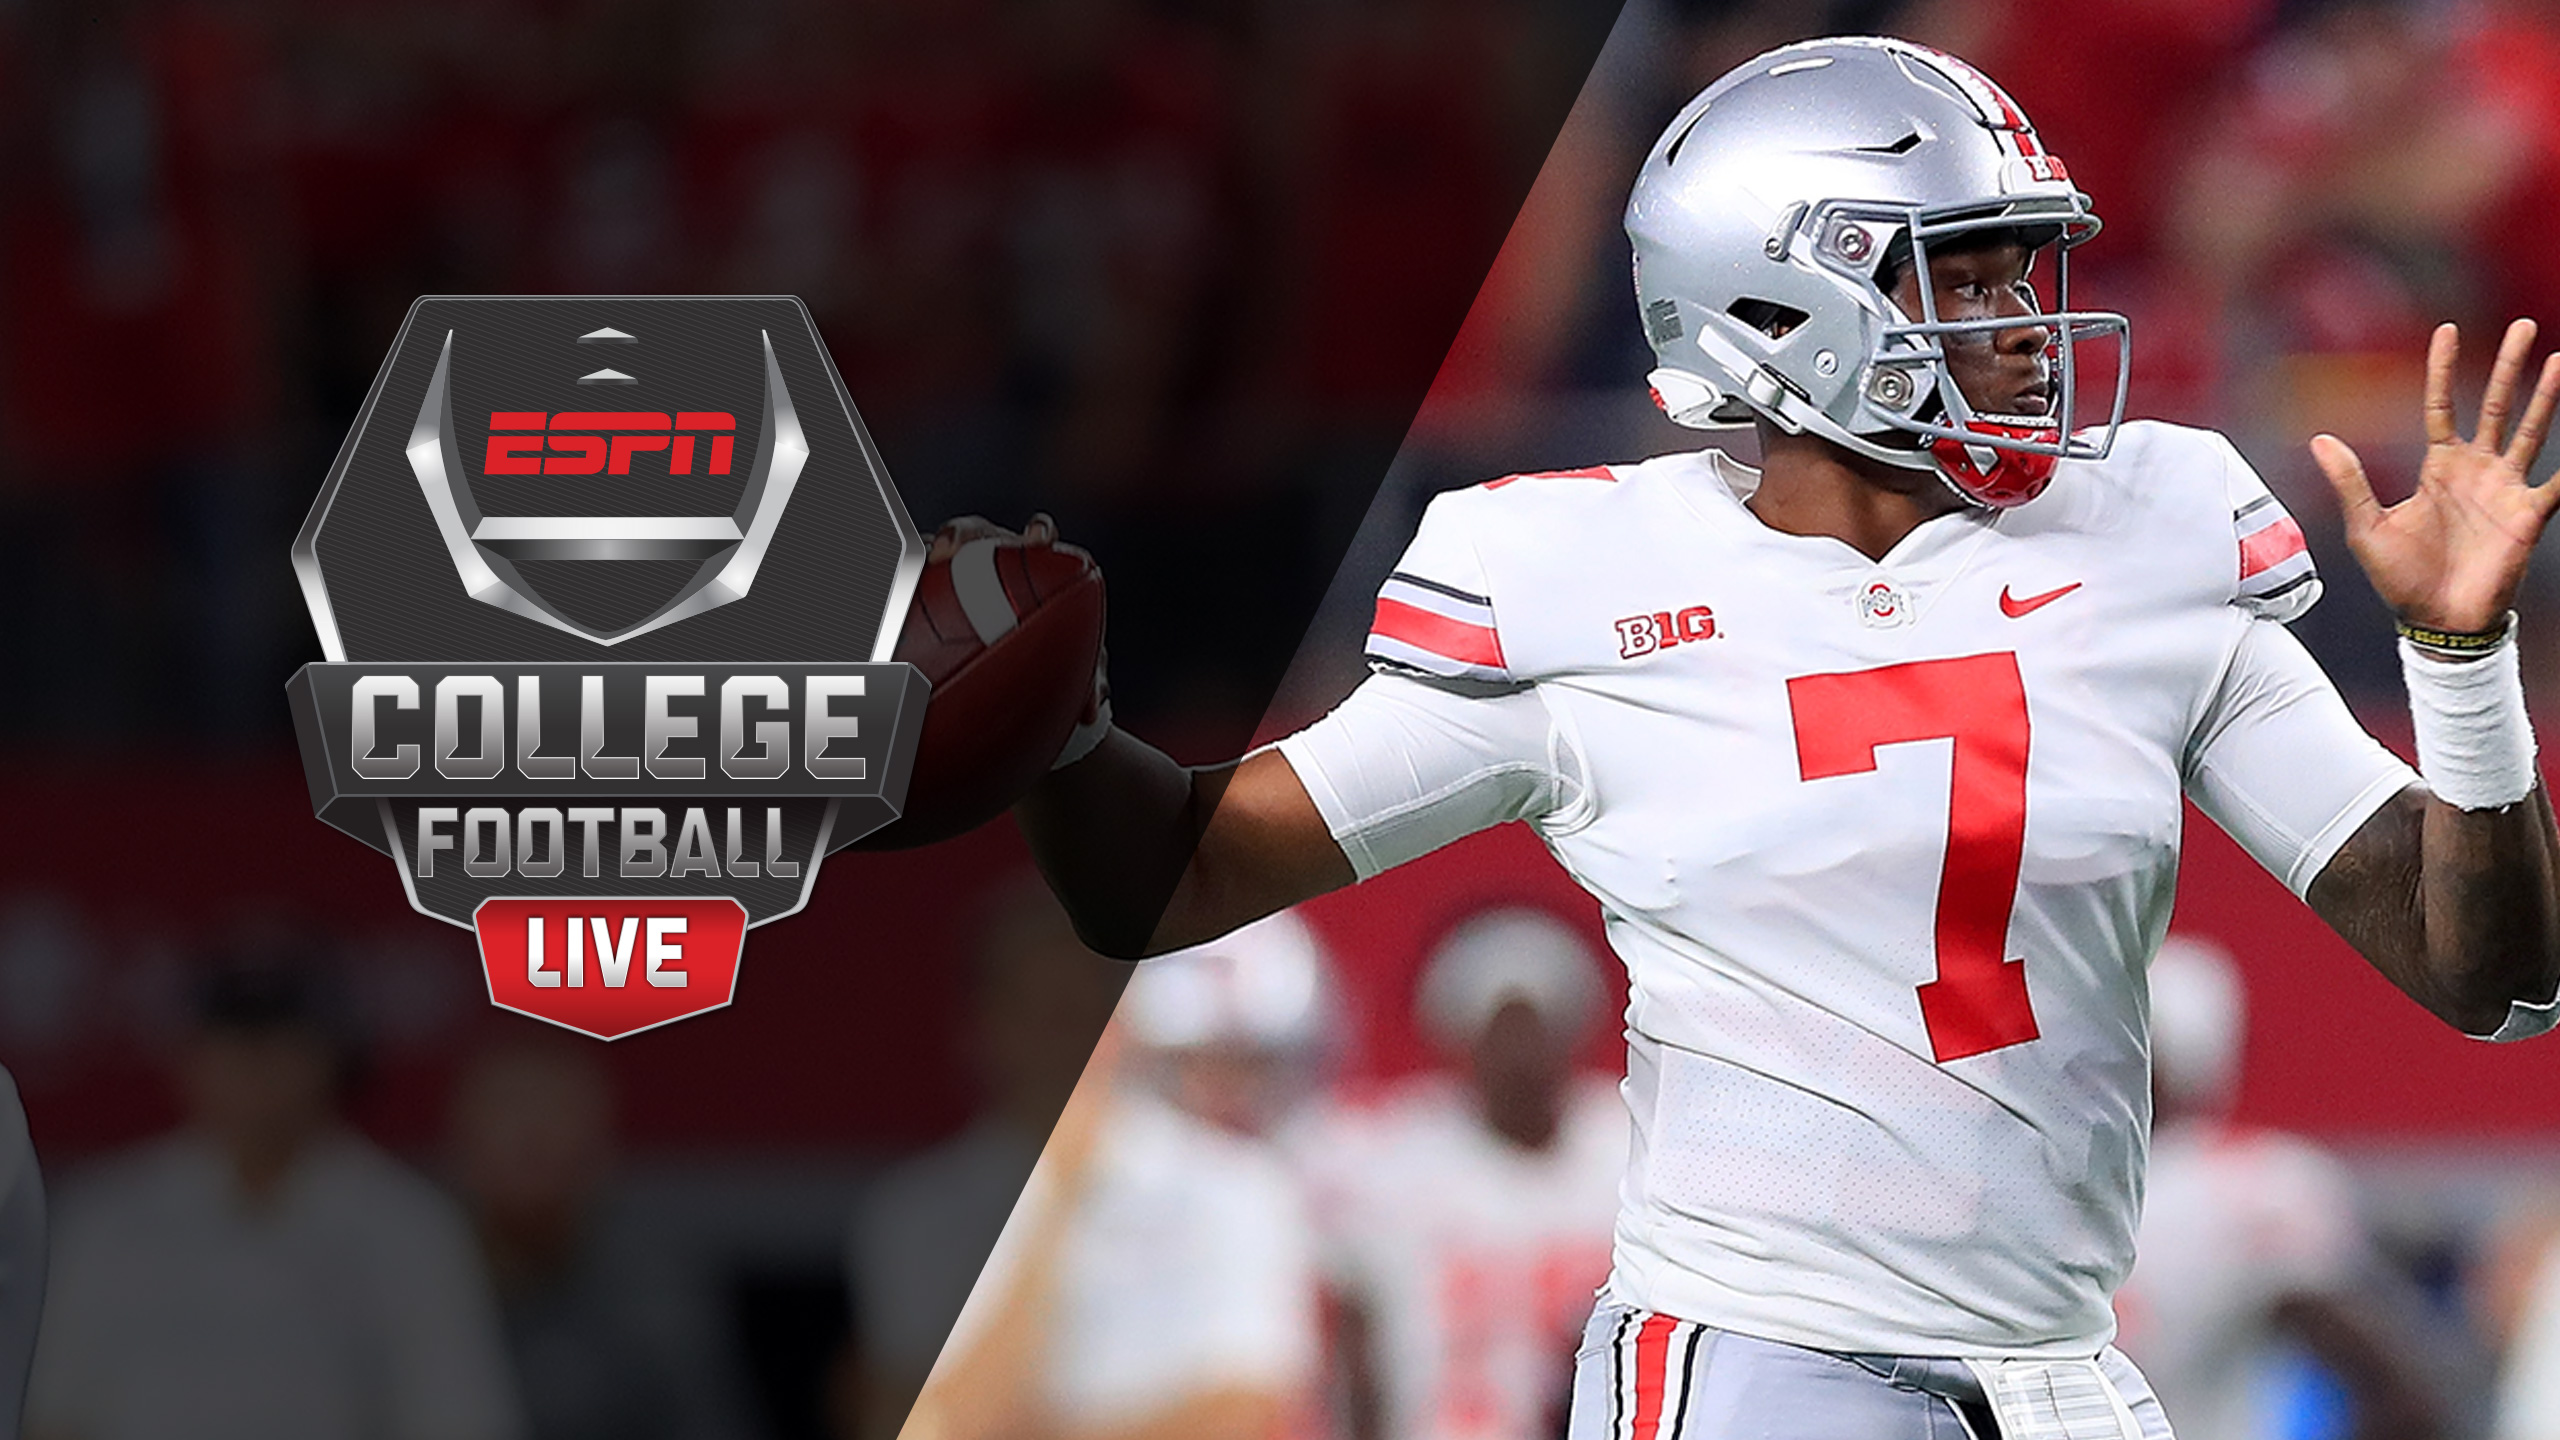 Thu, 10/18 - College Football Live Presented by Dr Pepper